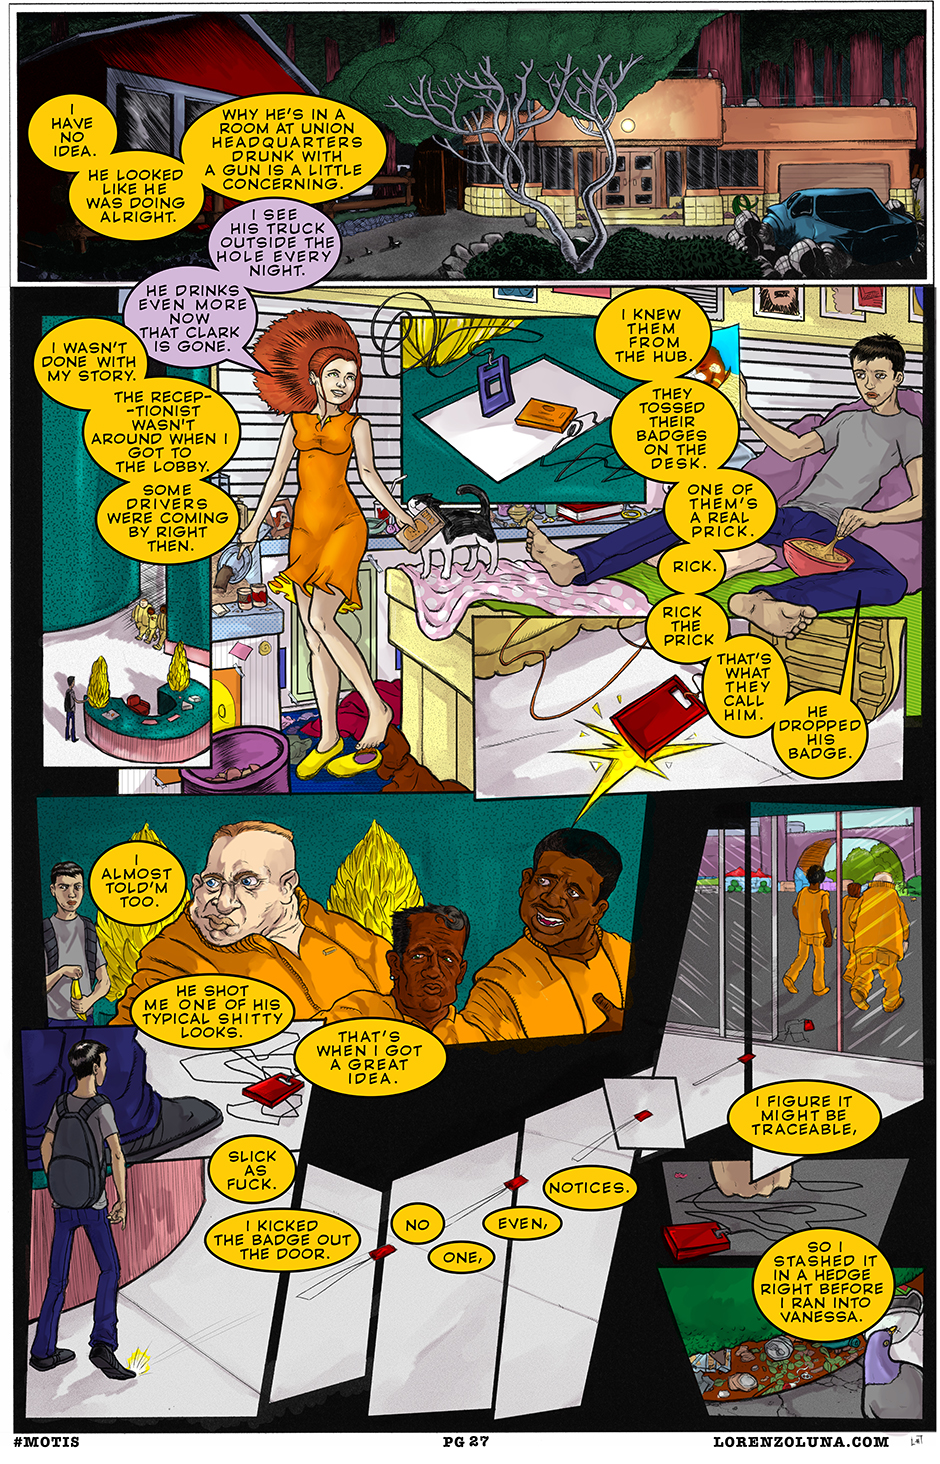 the maze page 27